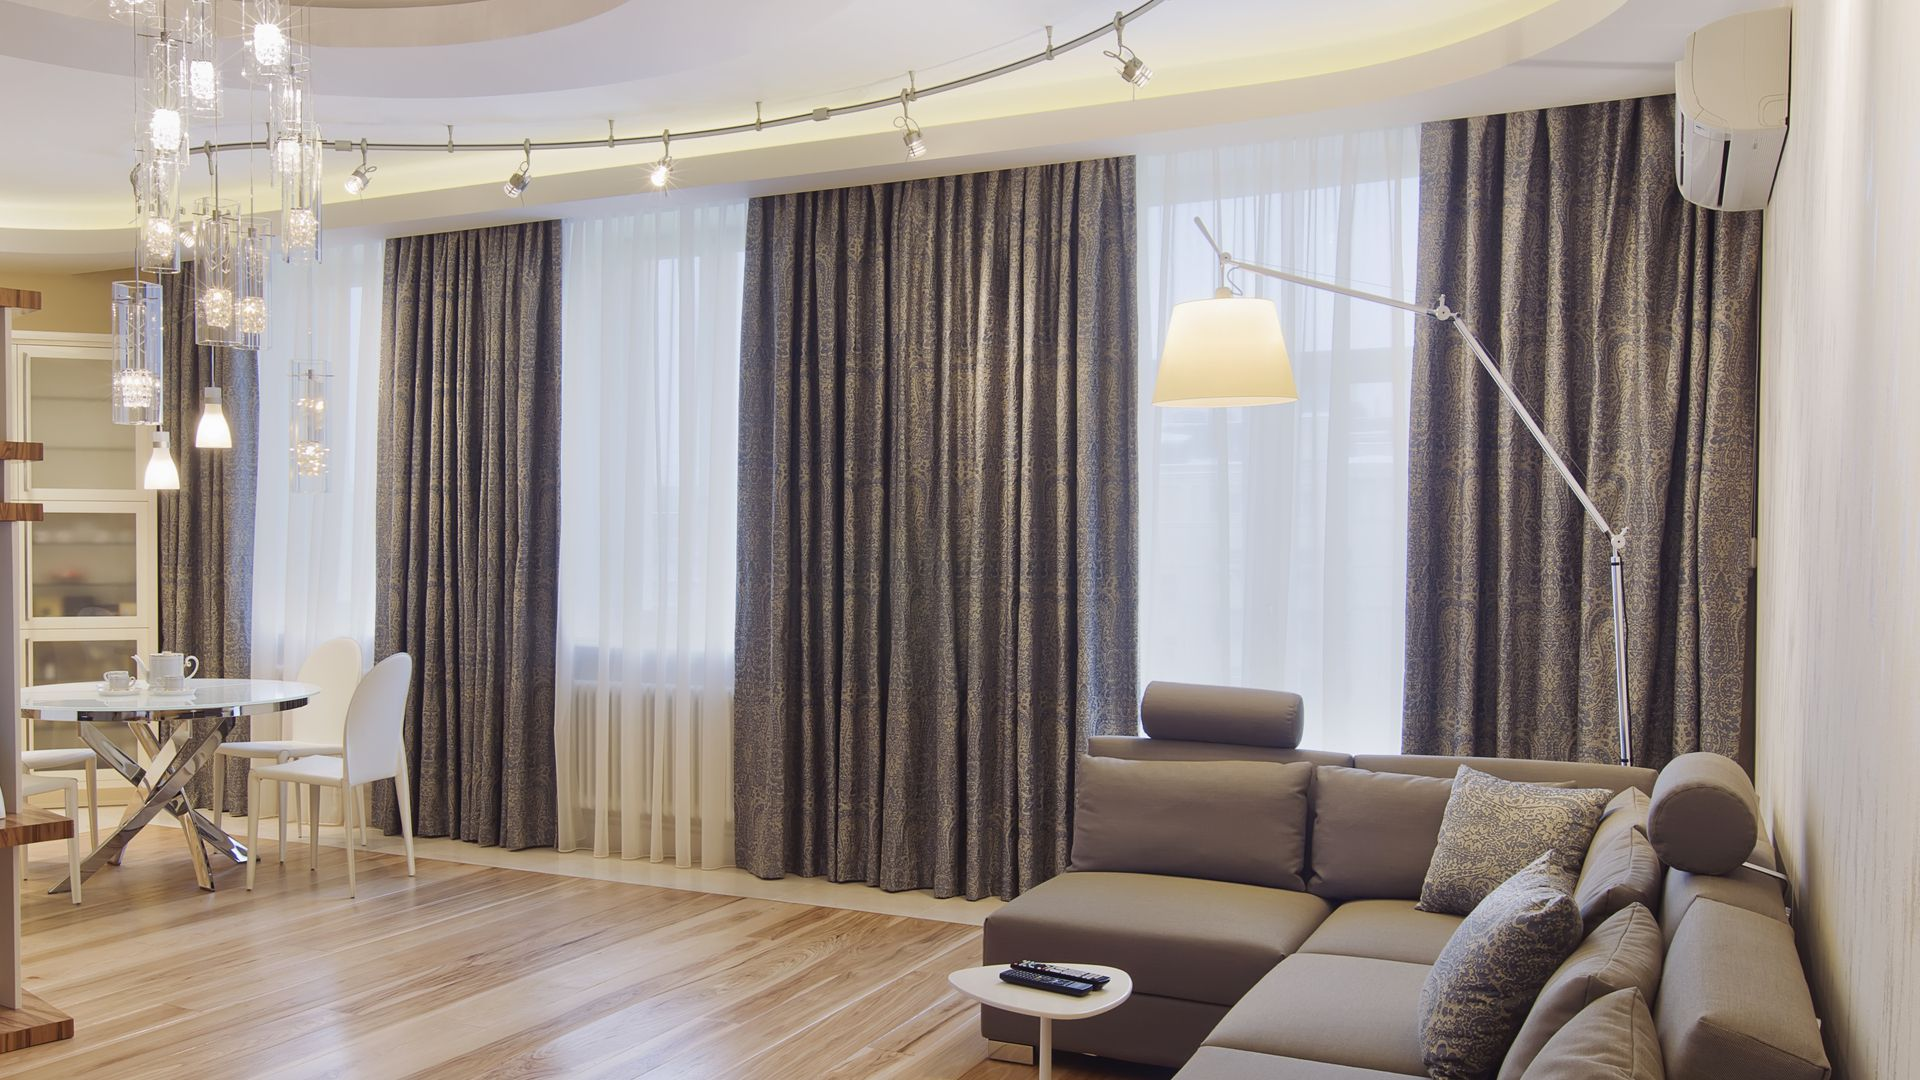 bedroom curtains, living room, curtains, custom drapes, for sale, drapes near me, drapes online